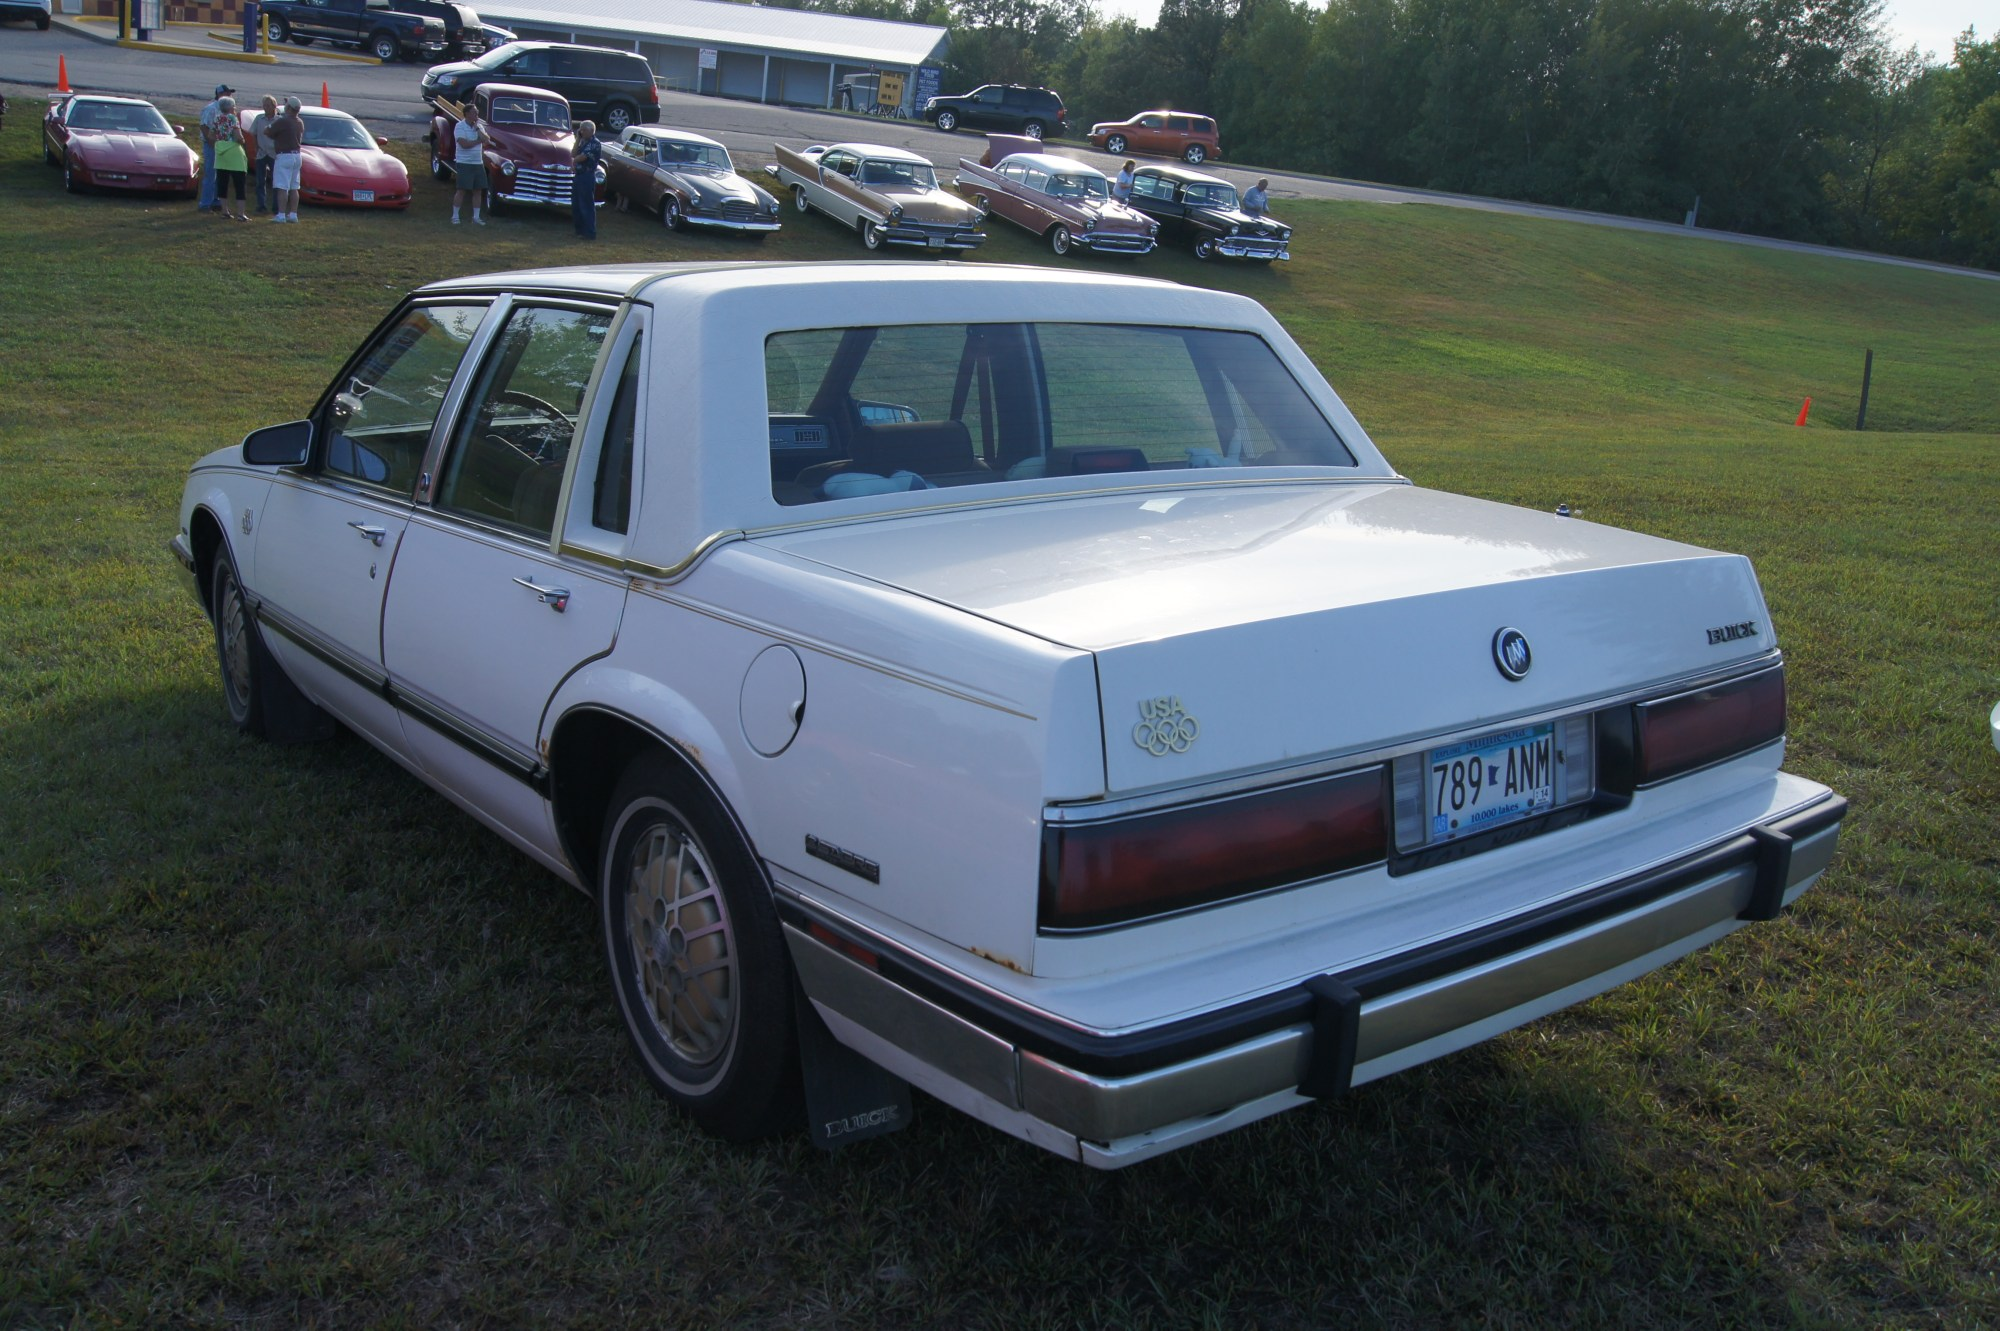 hight resolution of file 1988 buick lesabre olympic edition 9844889023 jpg